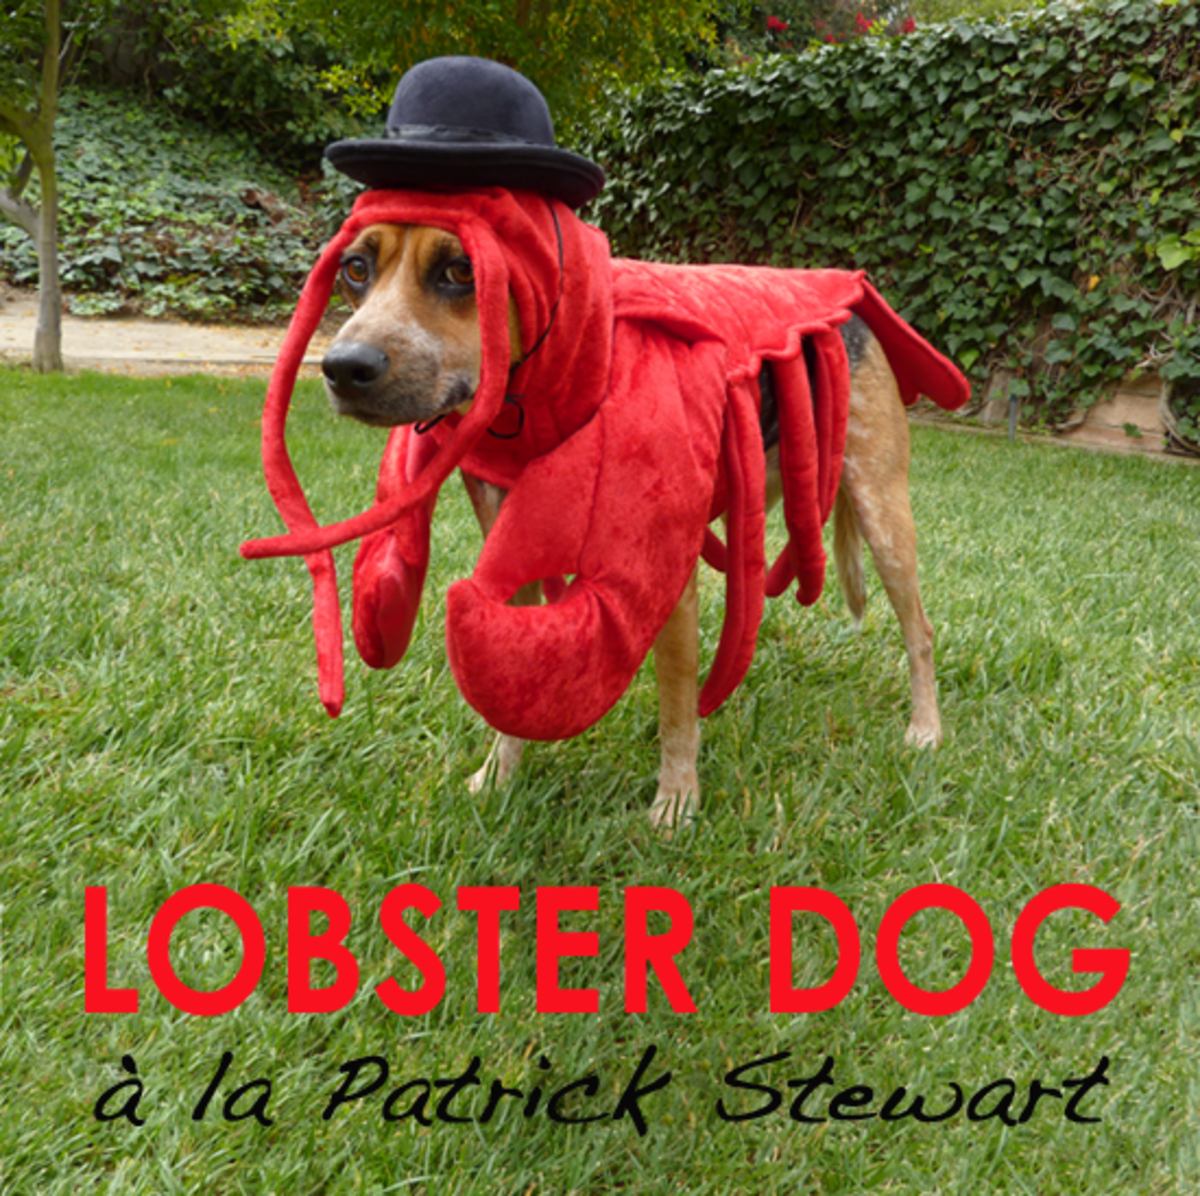 How to make a lobster costume for your dog pethelpful in this article youll find a step by step guide to making a lobster costume for your dog or cat complete with patterns and photos solutioingenieria Gallery